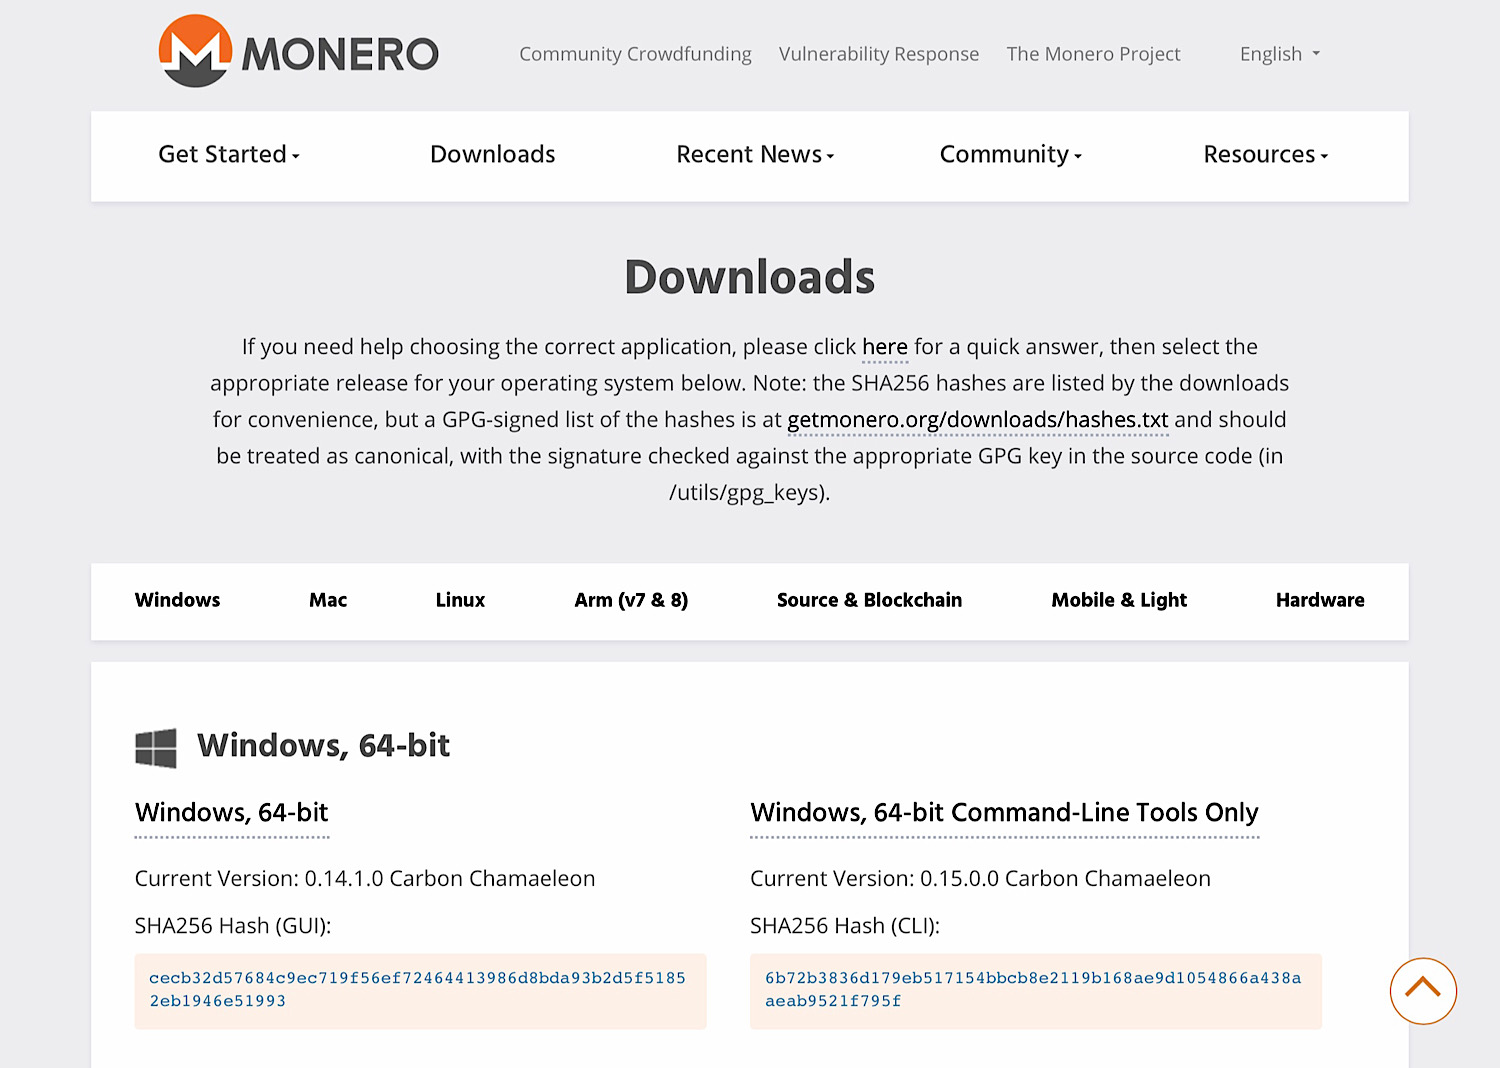 The Monero download page.